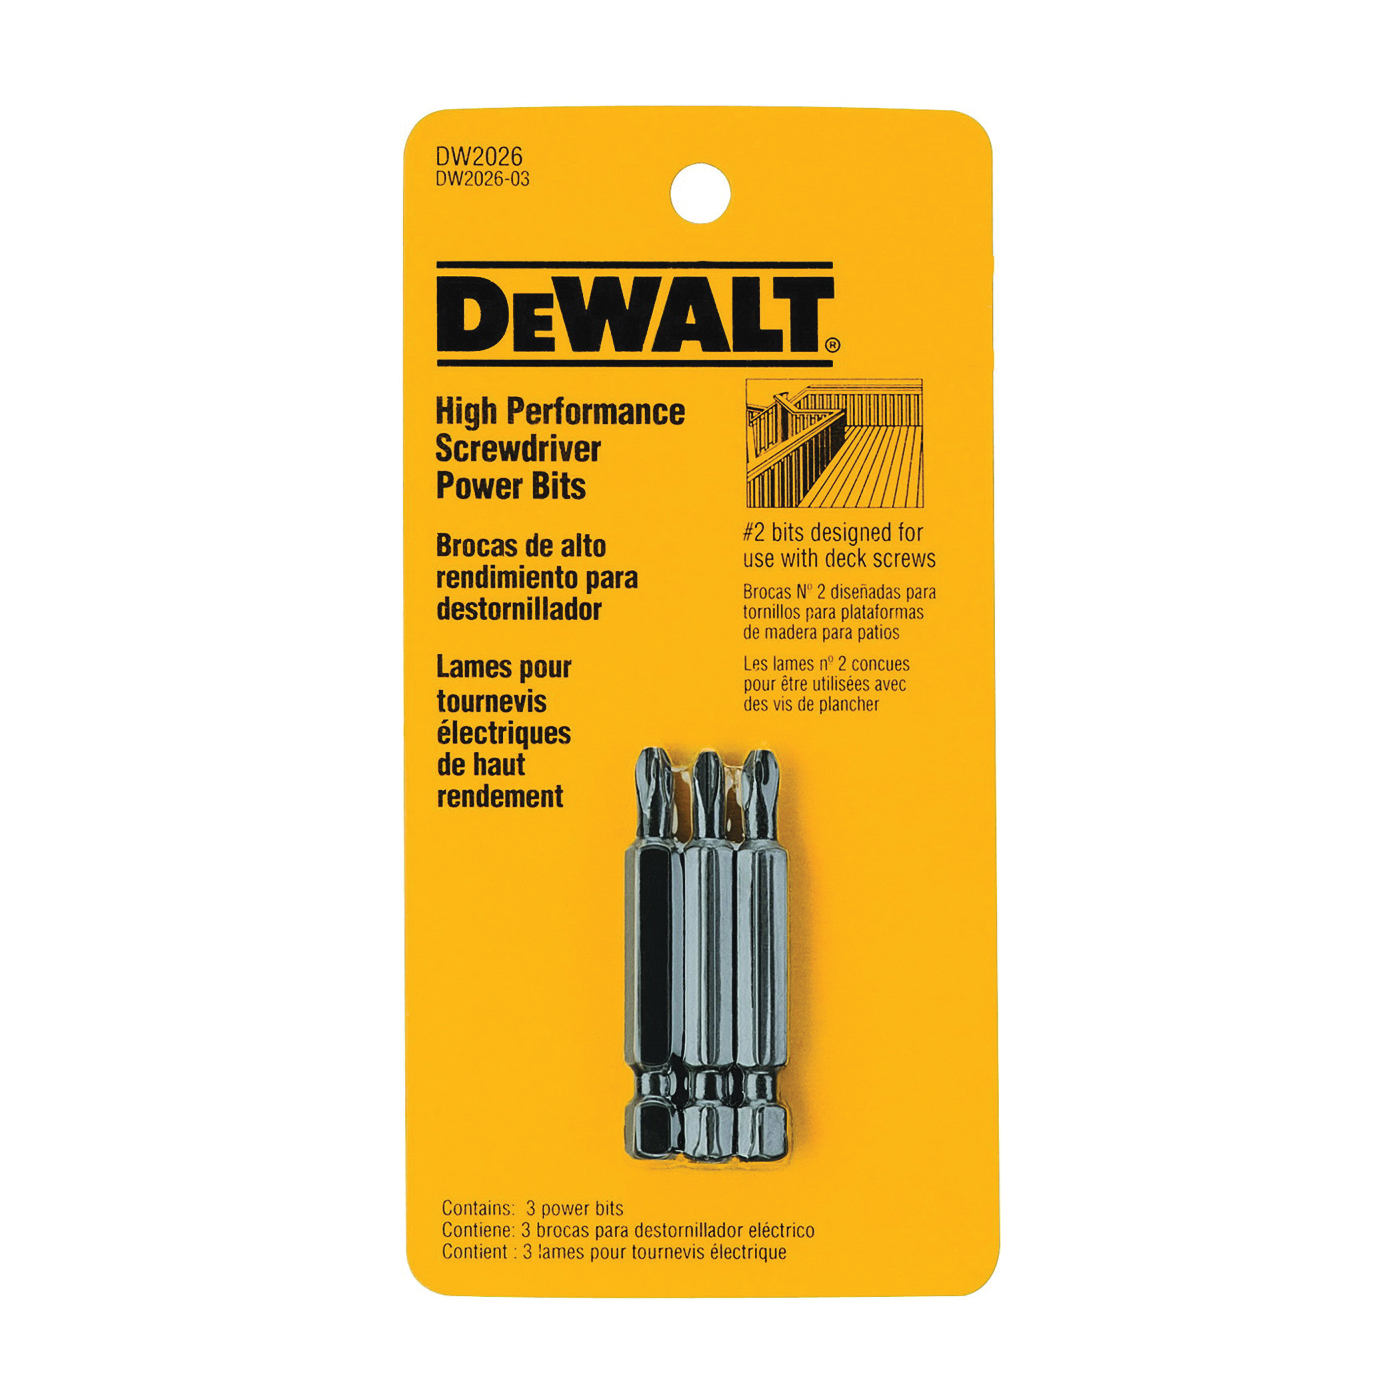 Picture of DeWALT DW2026 Z Power Bit, #2 Drive, Phillips Drive, 1/4 in Shank, Hex Shank, 2 in L, Steel